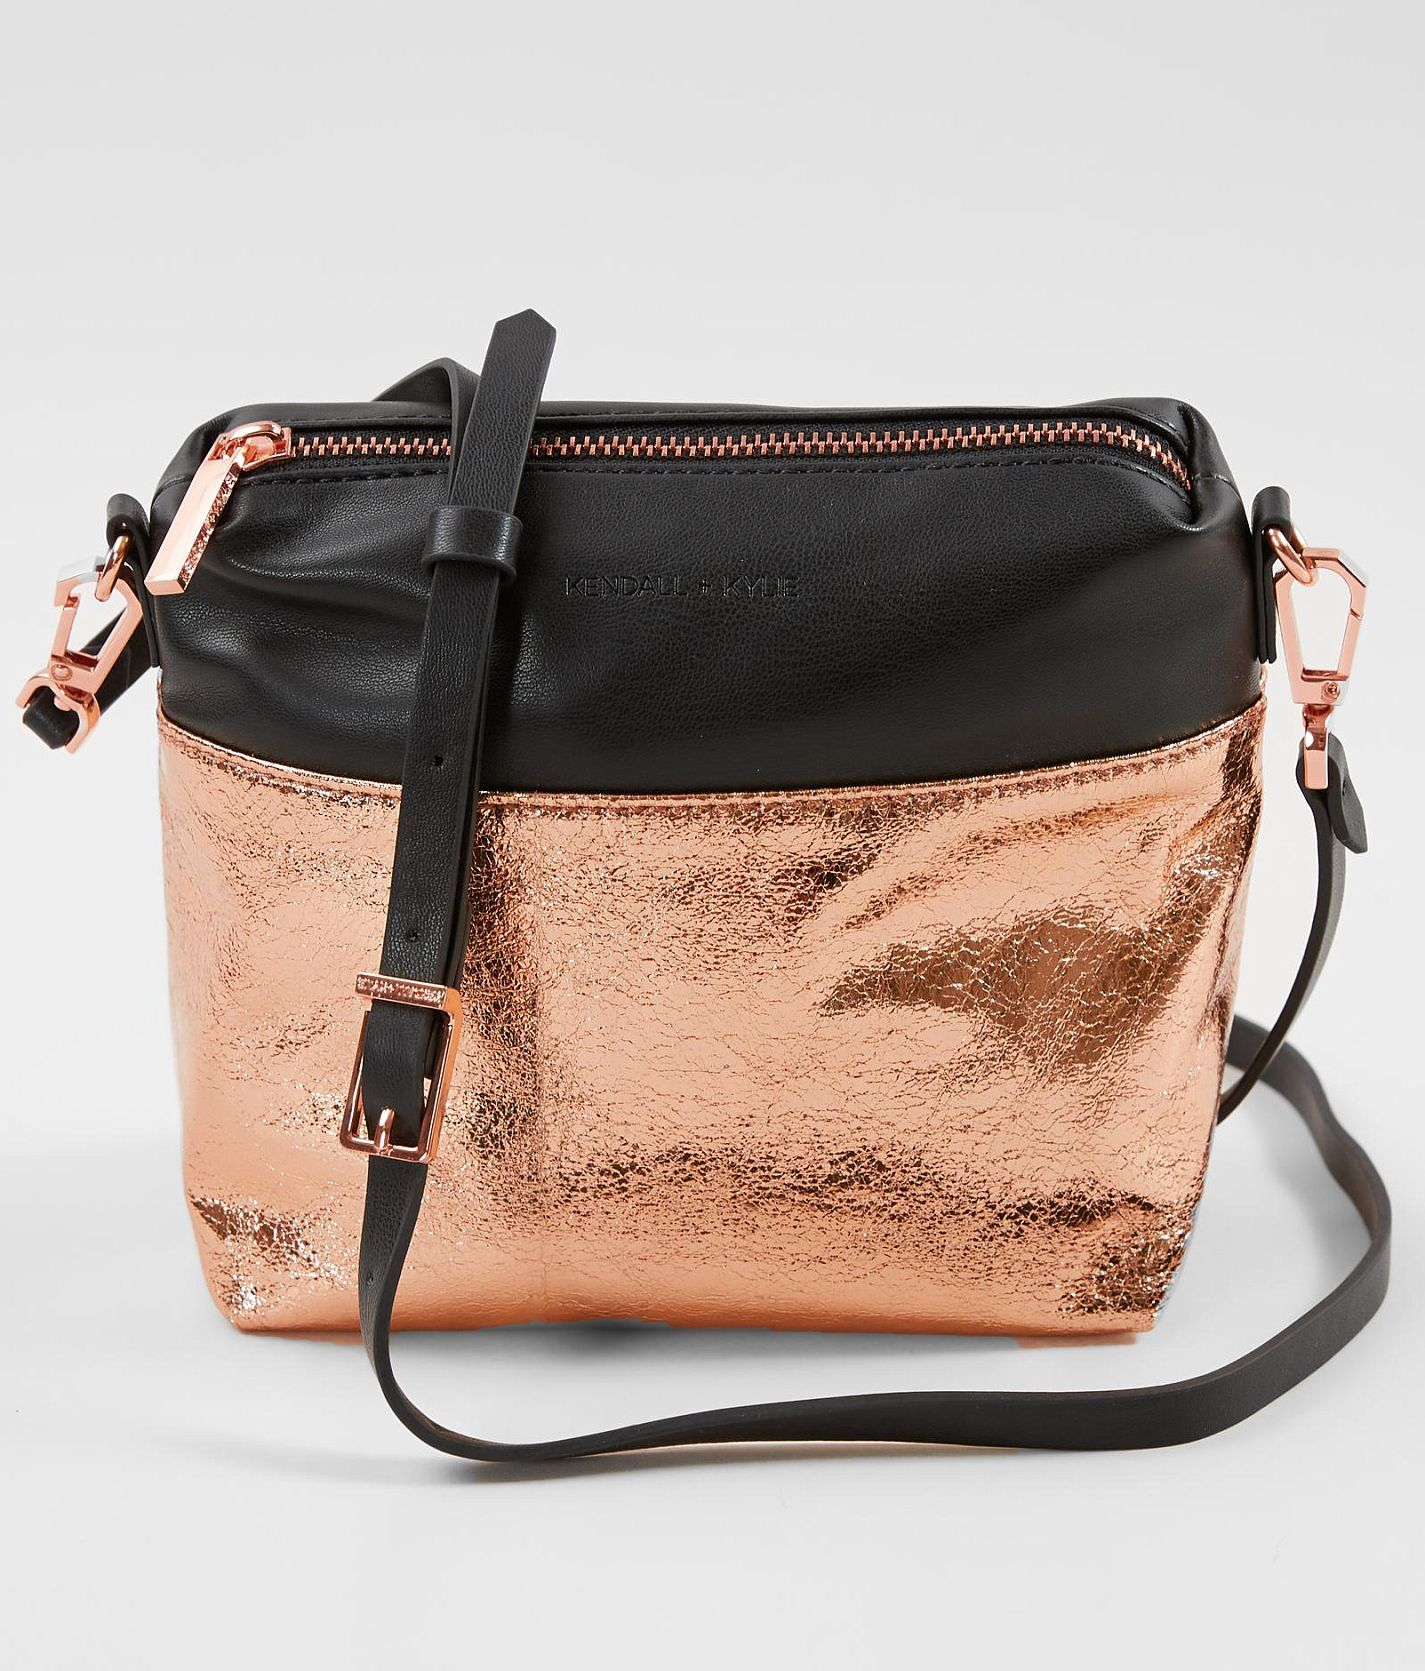 KENDALL + KYLIE Callie Foiled Crossbody Purse - Women s Accessories in  Copper Foil Fabric  82ae649311774